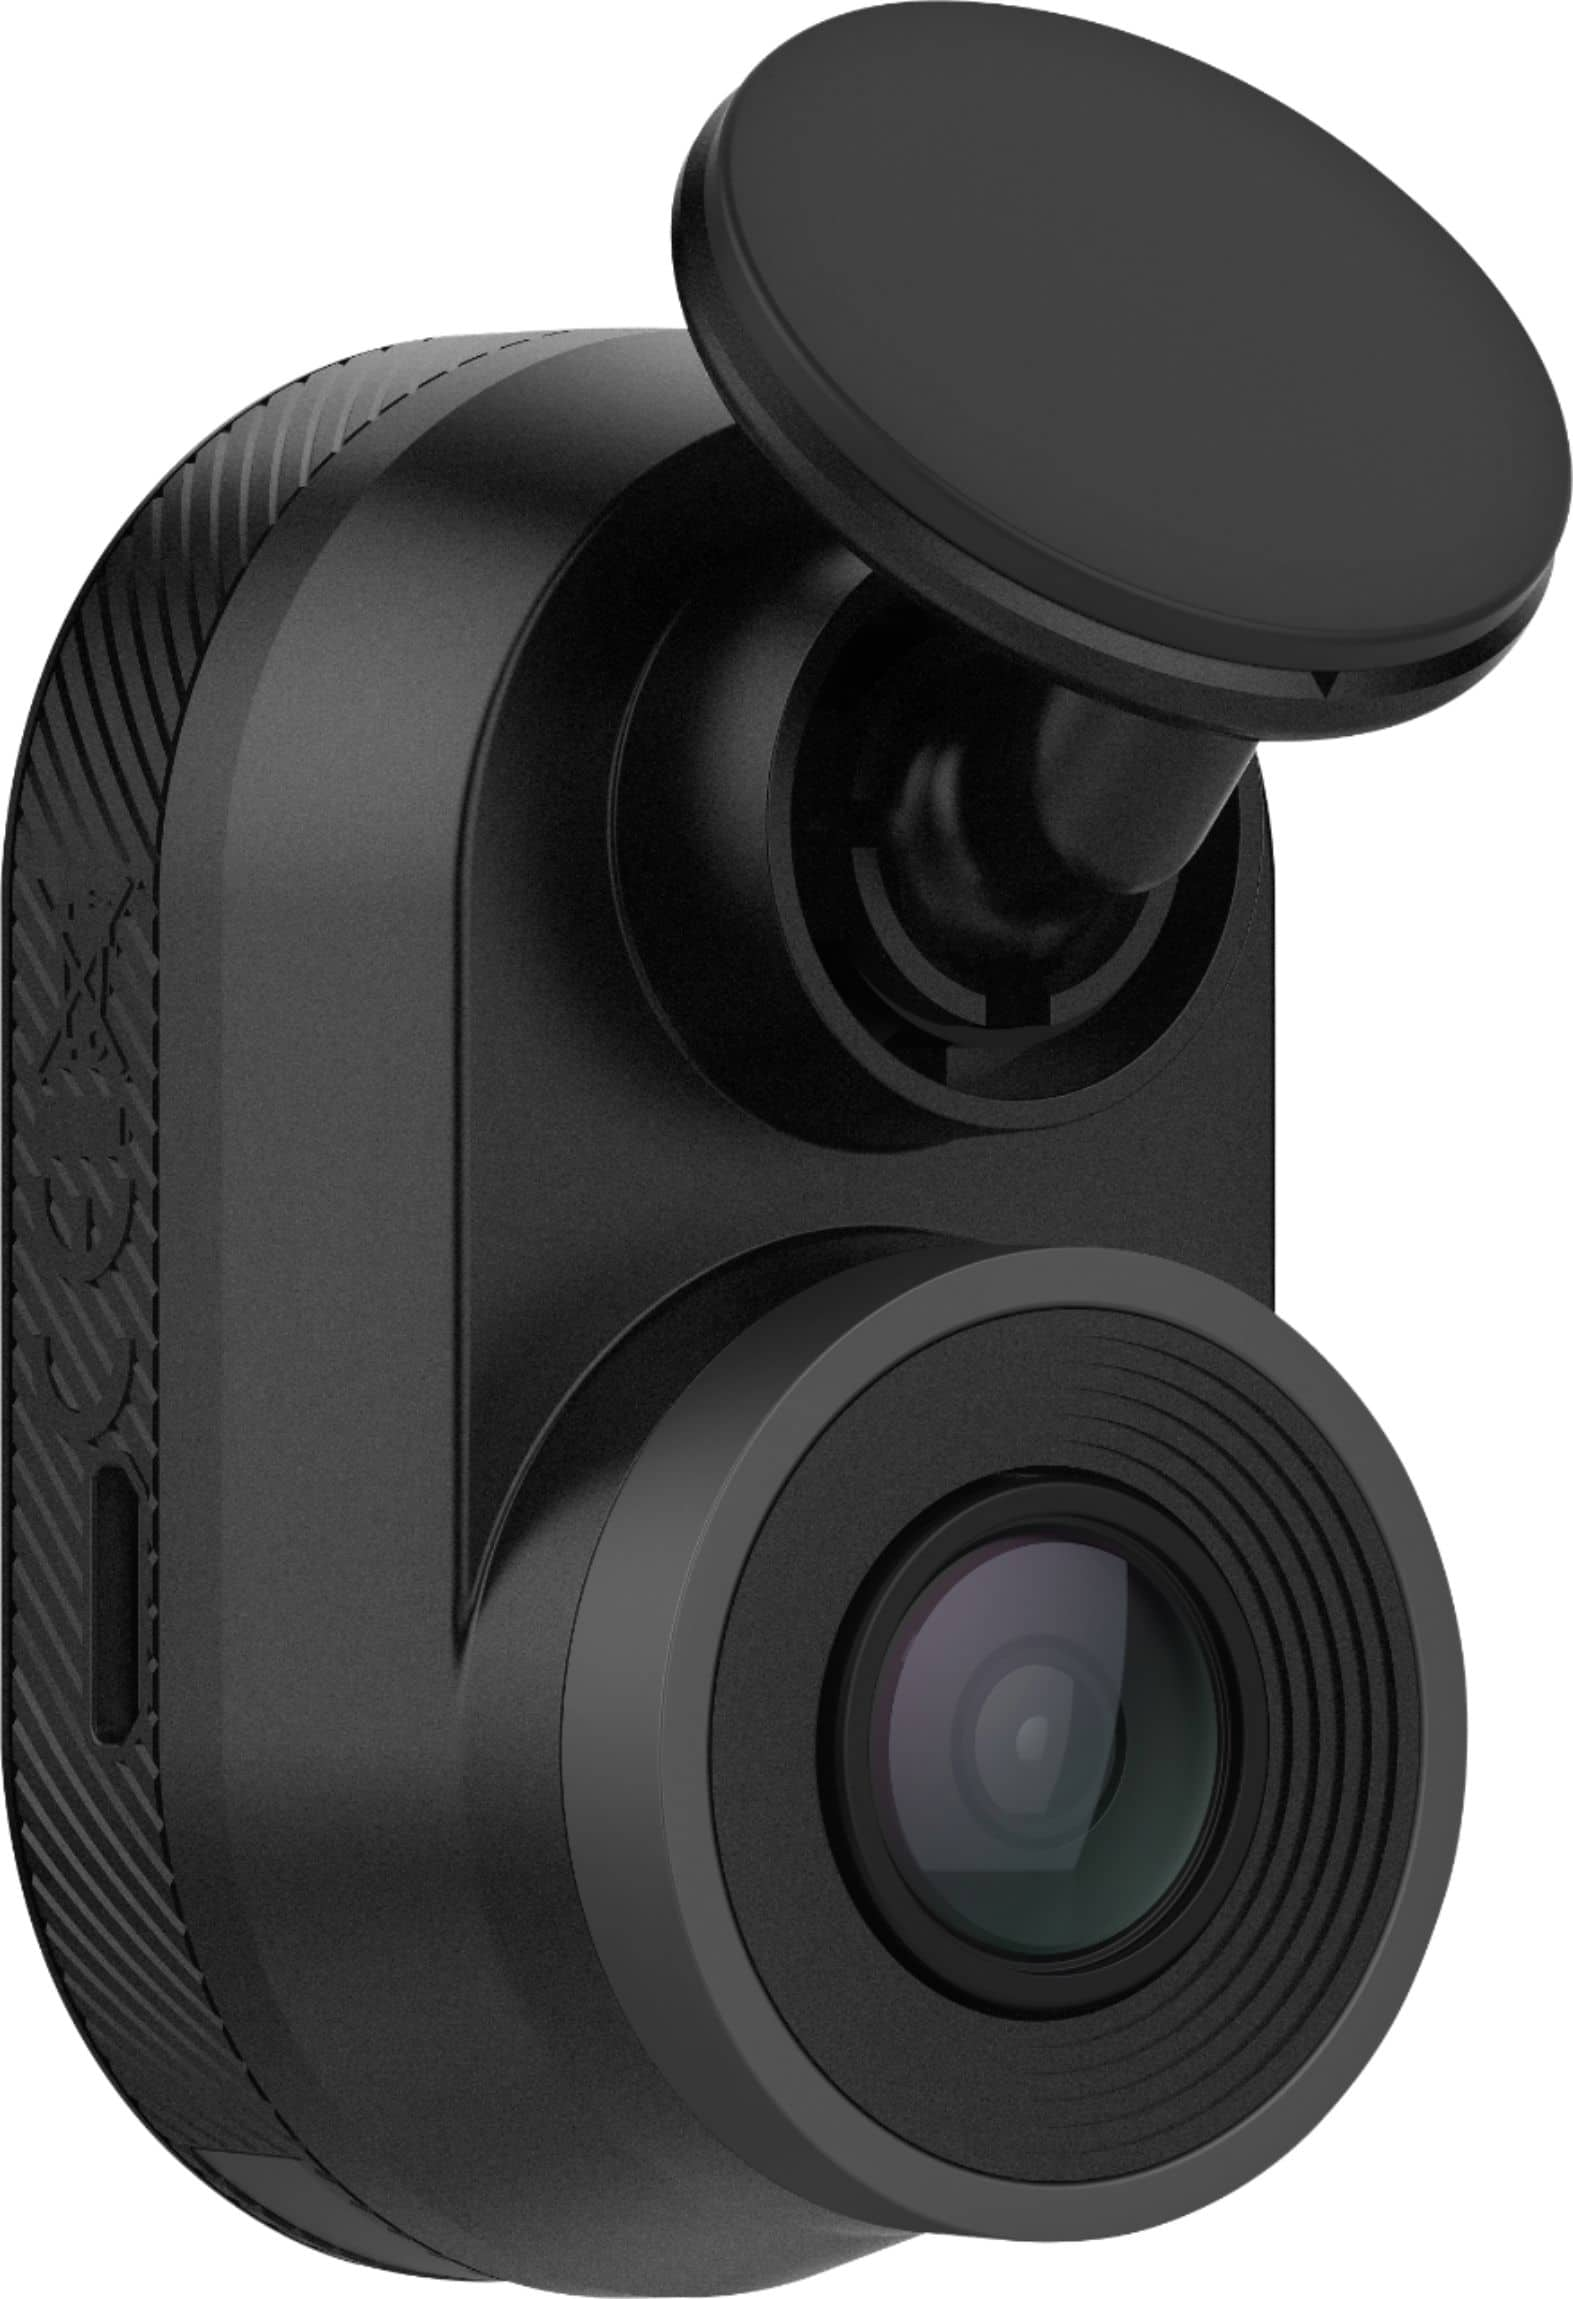 Garmin Mini Dash Cam 010-02062-00 - Best Buy $99.99